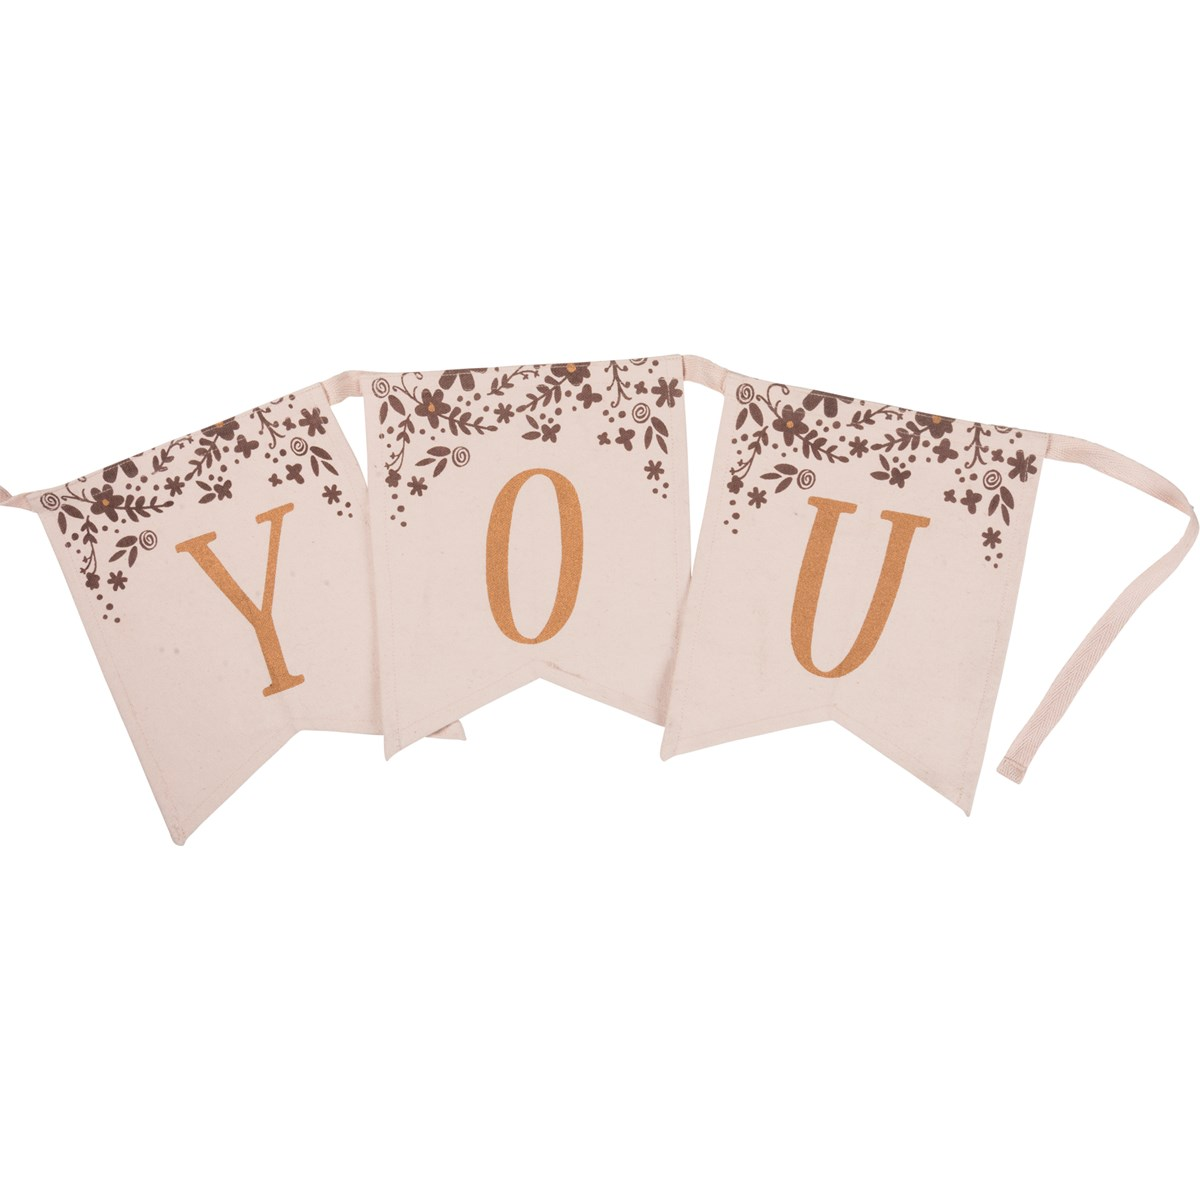 "Pennant Banner - Thank You - 72"" x 8"" - Cotton"